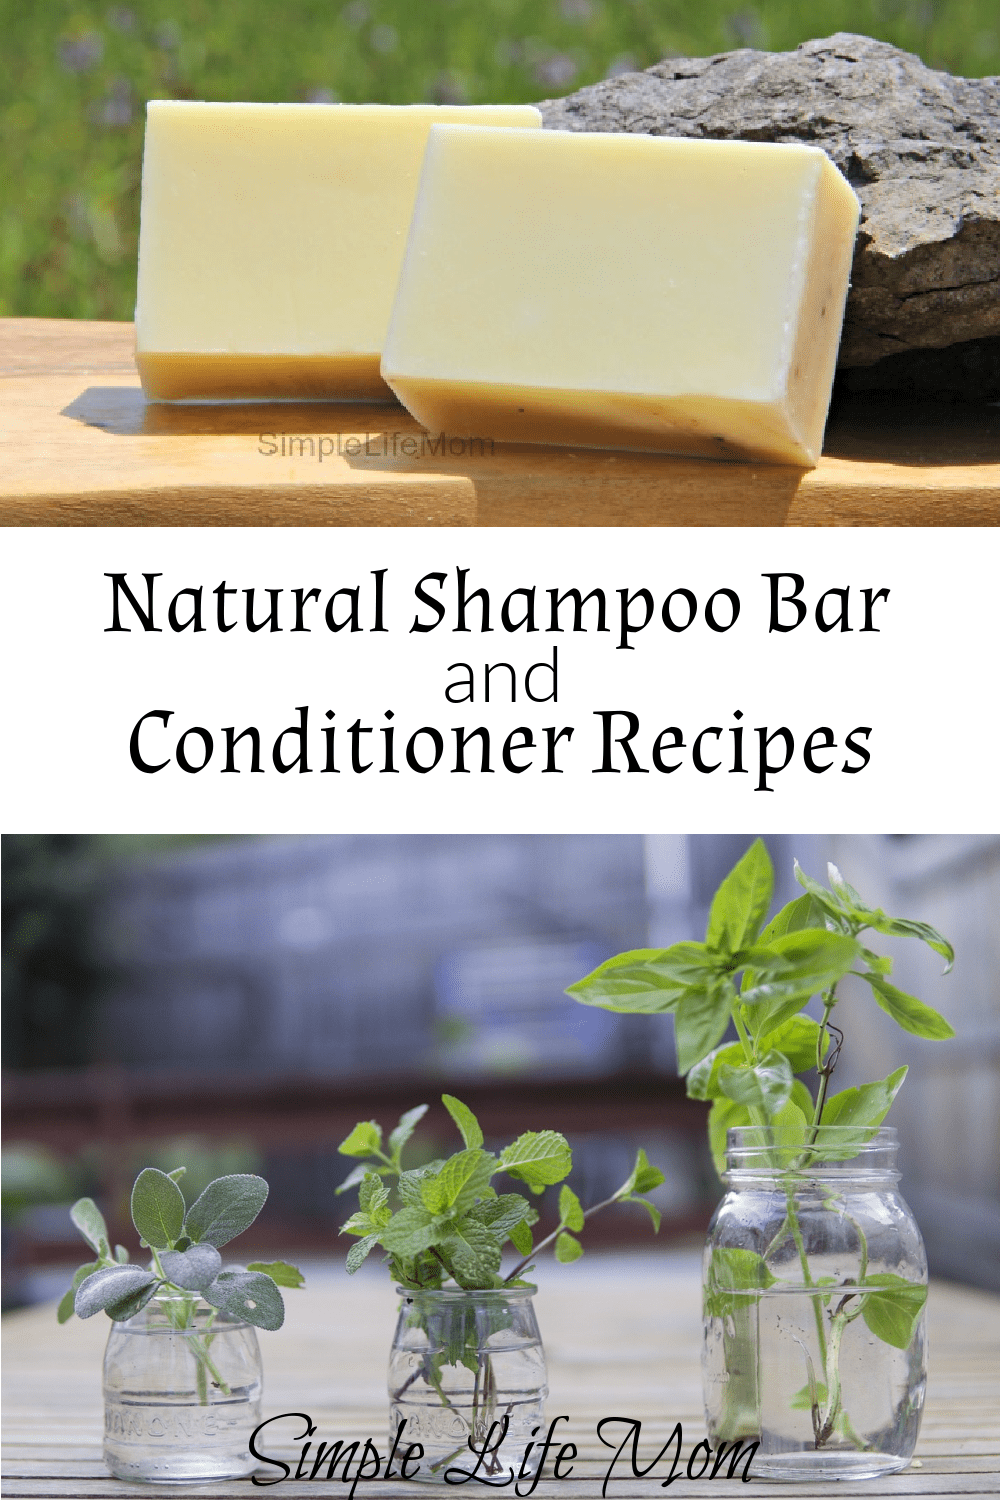 Shampoo Bar Recipe and Herbal Conditioners